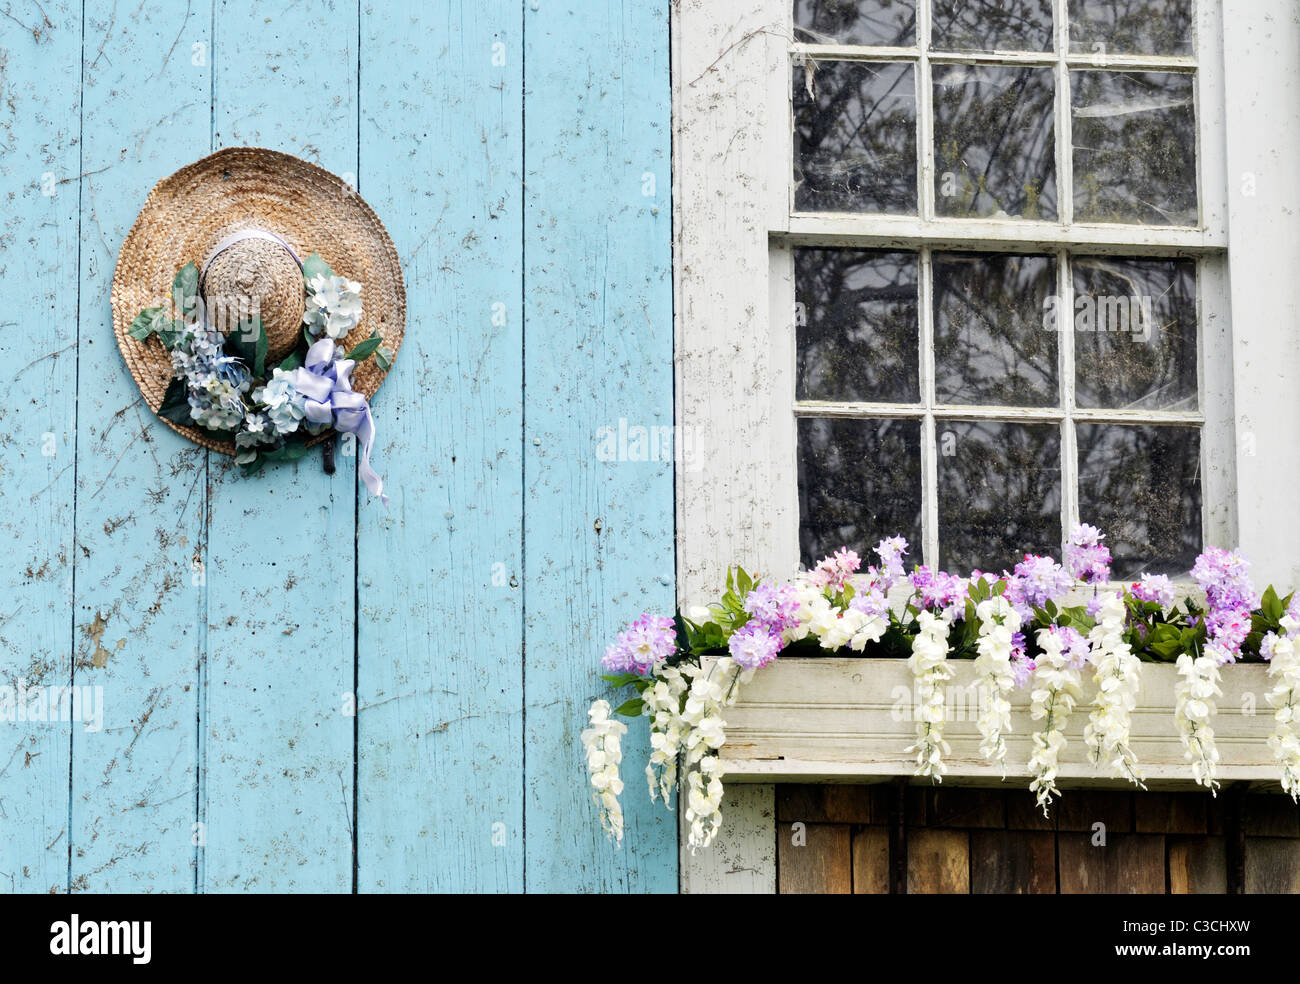 Picturesque Cape Cod barn with flowering window box and decorated straw hat on door. USA - Stock Image